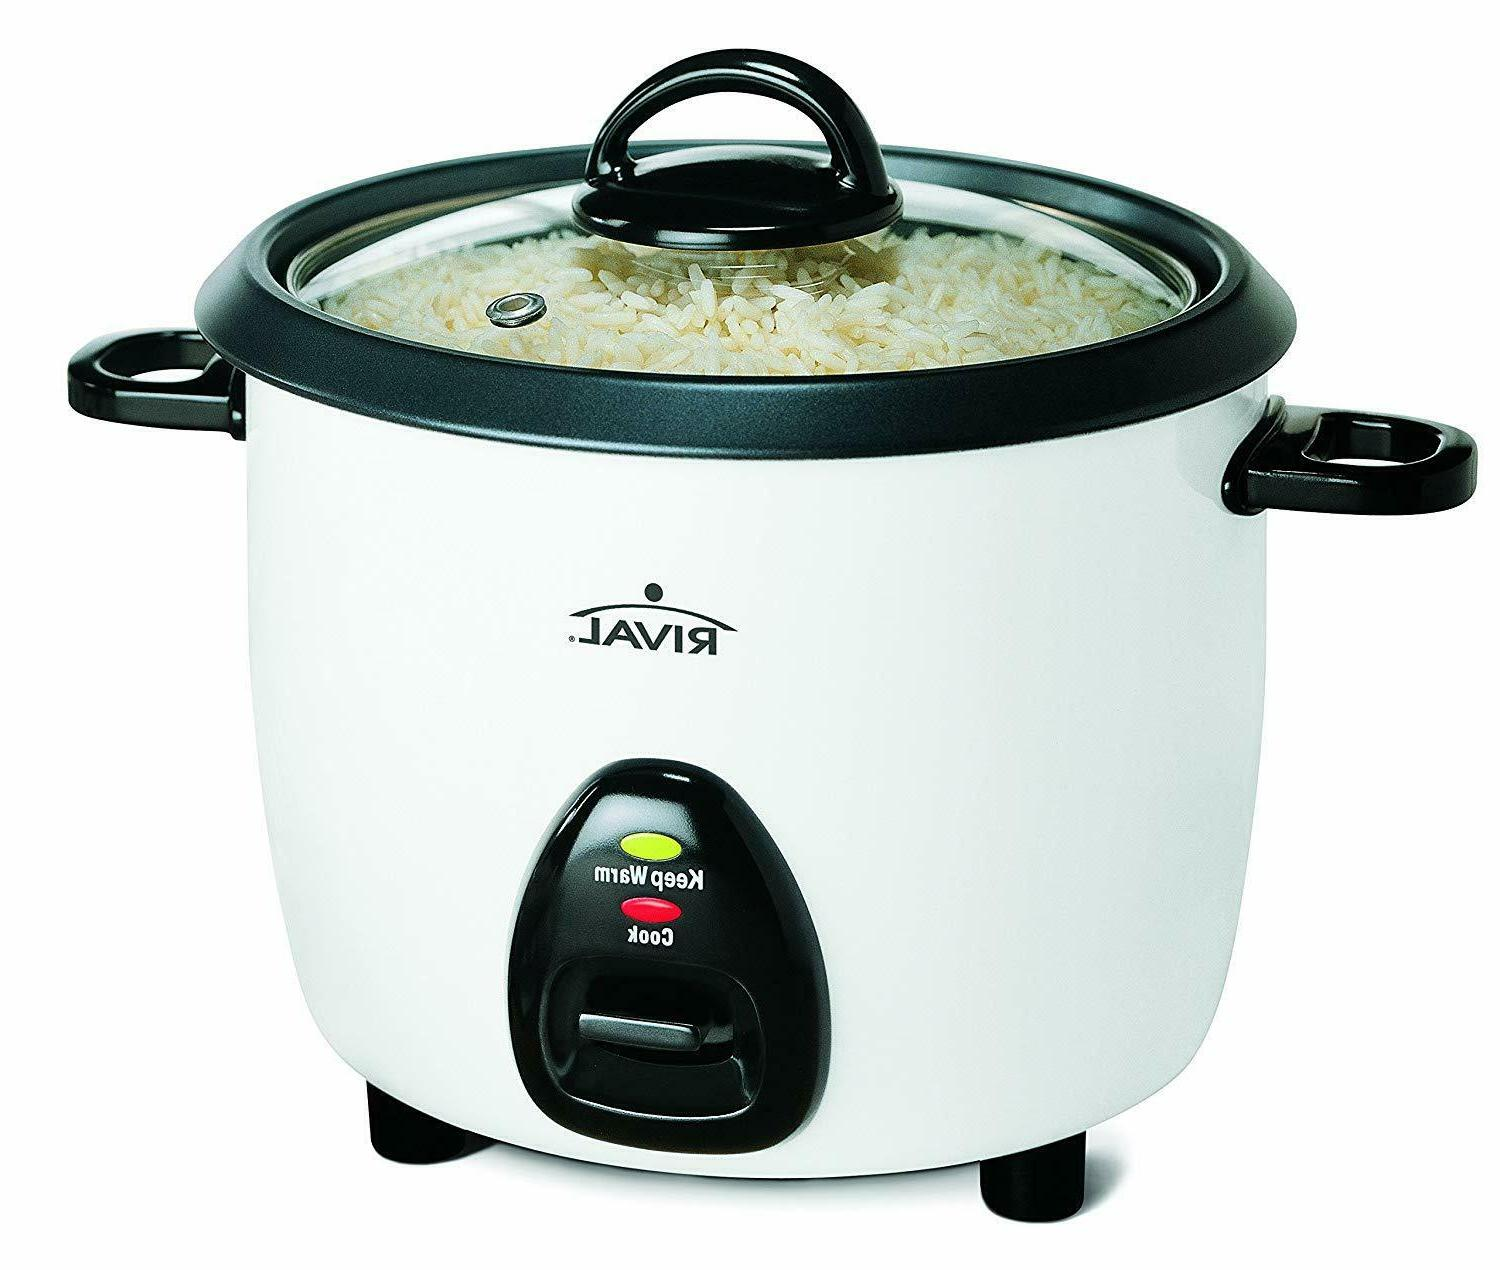 10 cup rice cooker with steamer basket